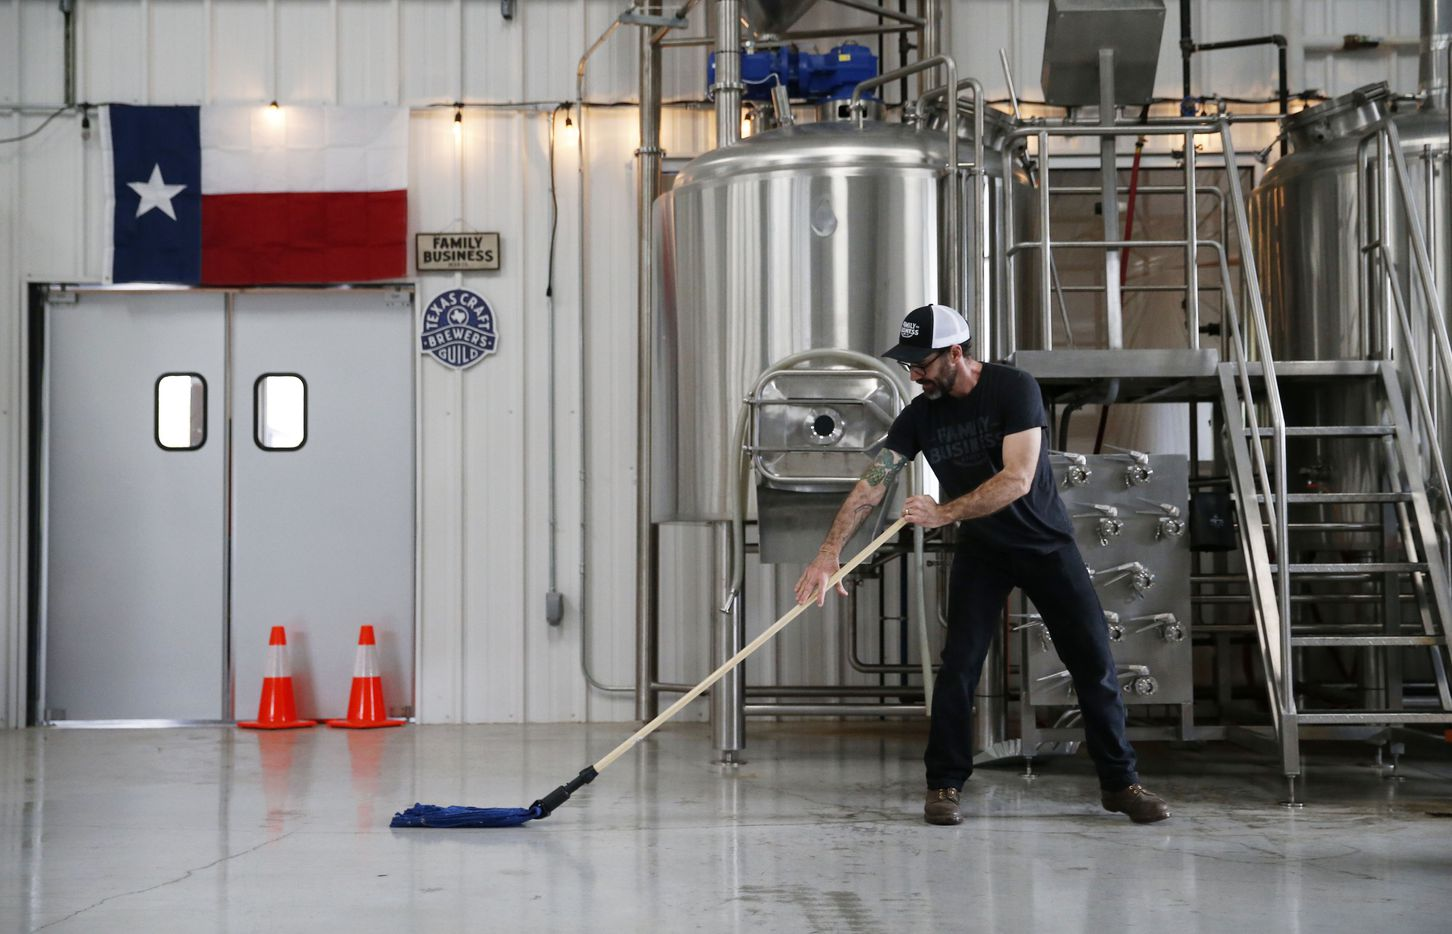 Head brewer Nate Seale mops the floor of the brewhouse at Family Business Beer Company.